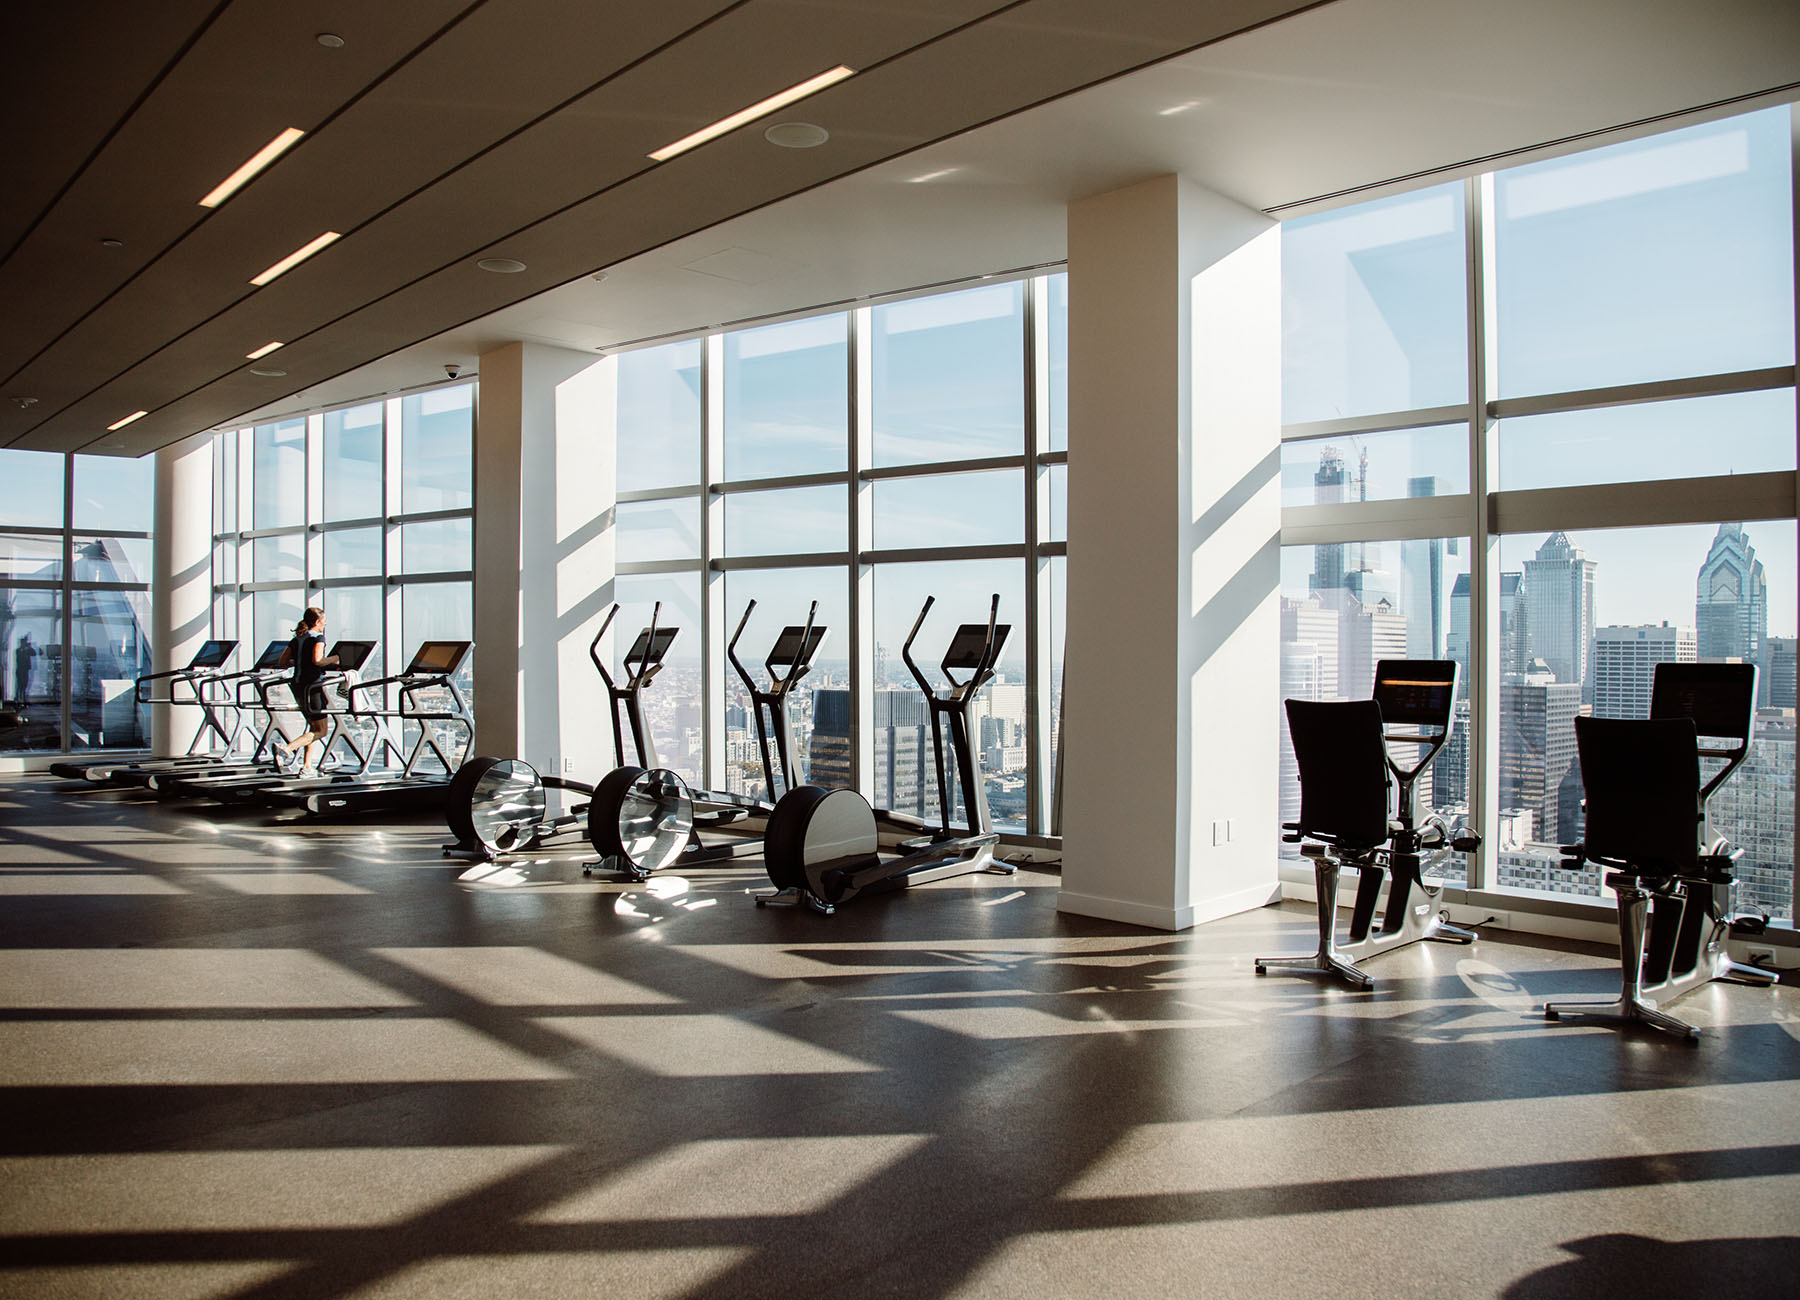 Fitness center with cardio equipment overlooking the Philadelphia skyline